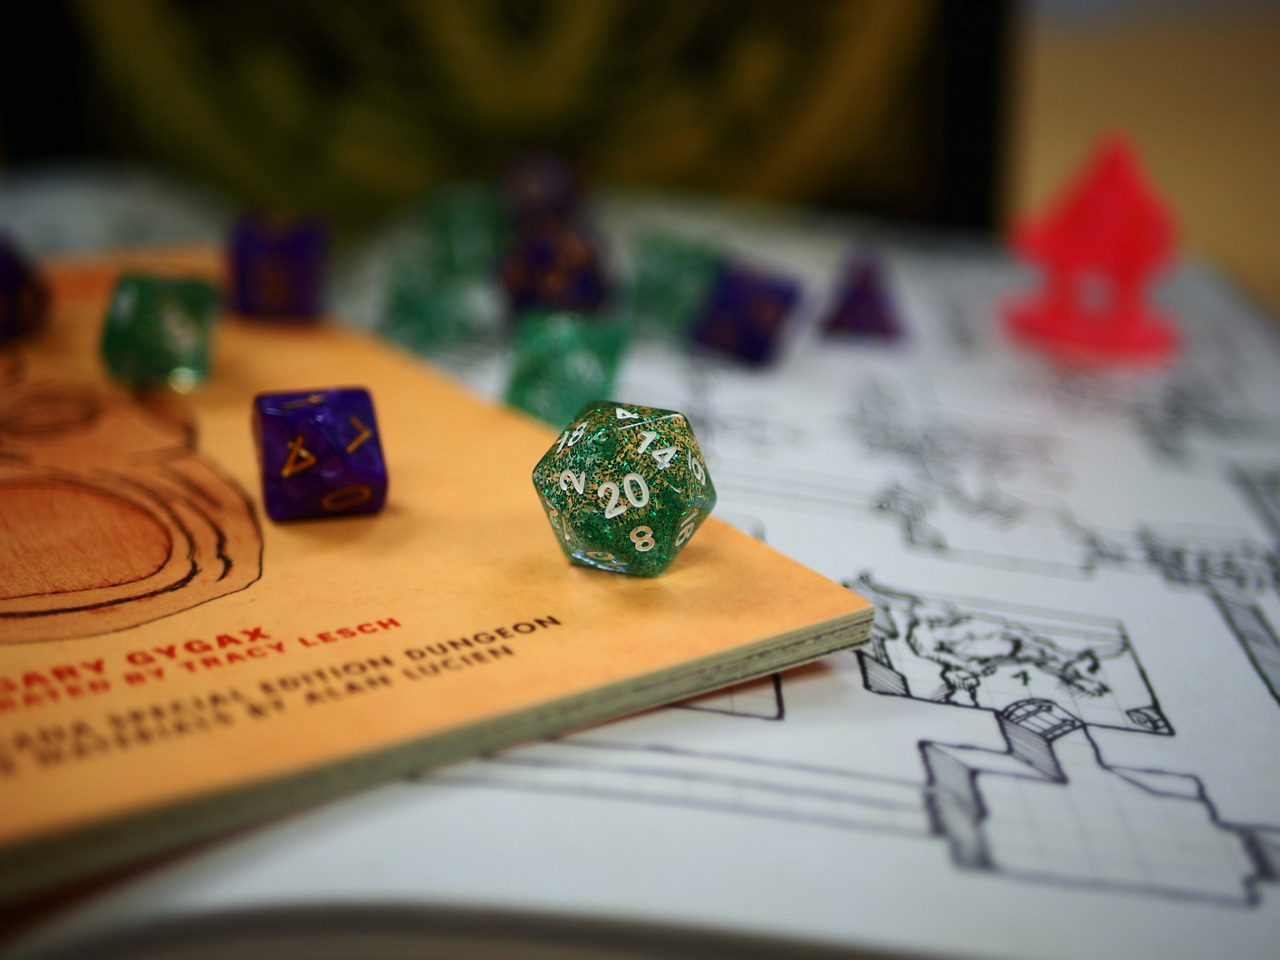 Dice on top of dungeons and dragons game